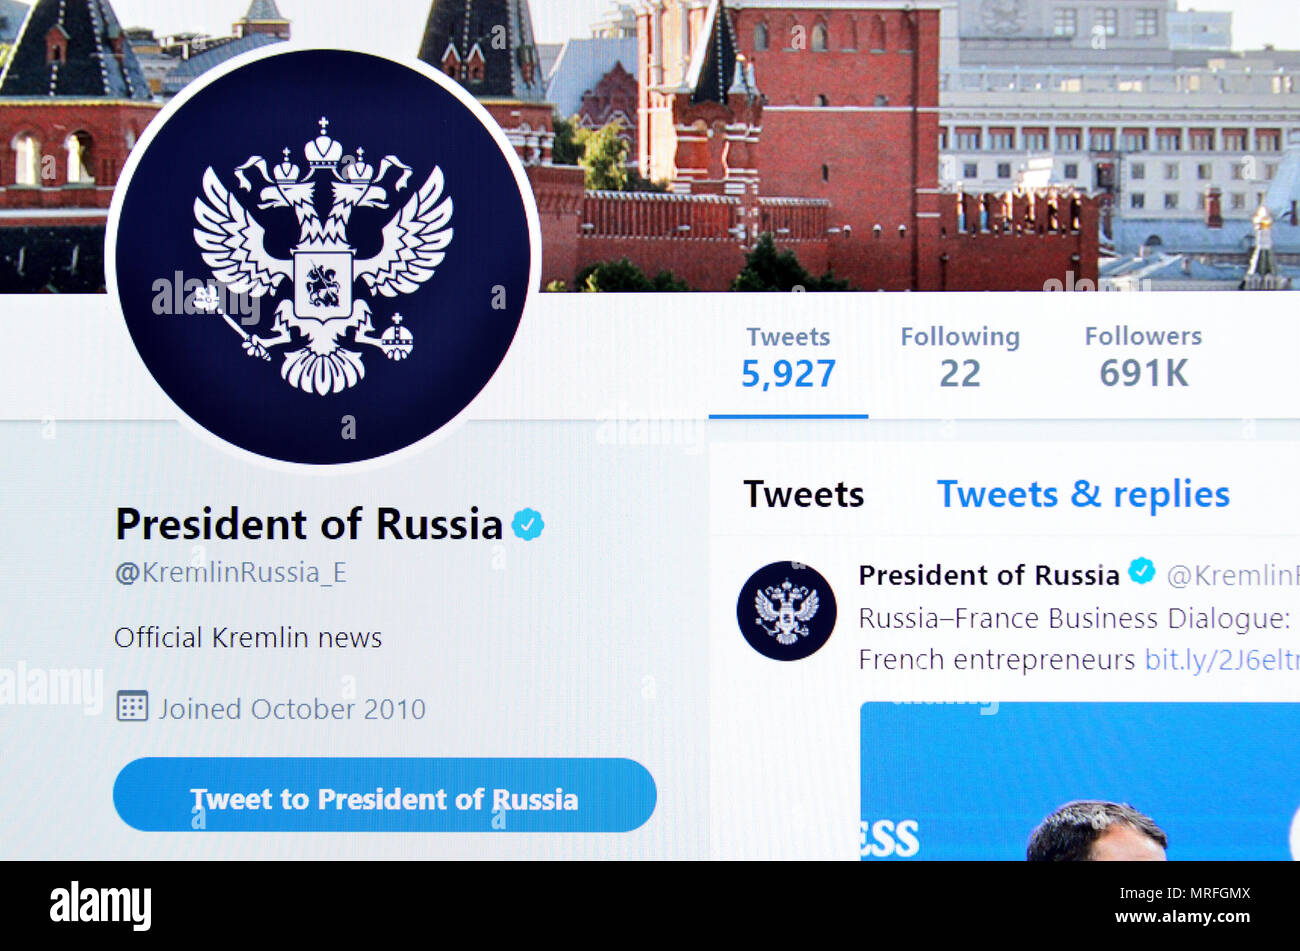 President of Russia official Twitter page (2018) - Stock Image